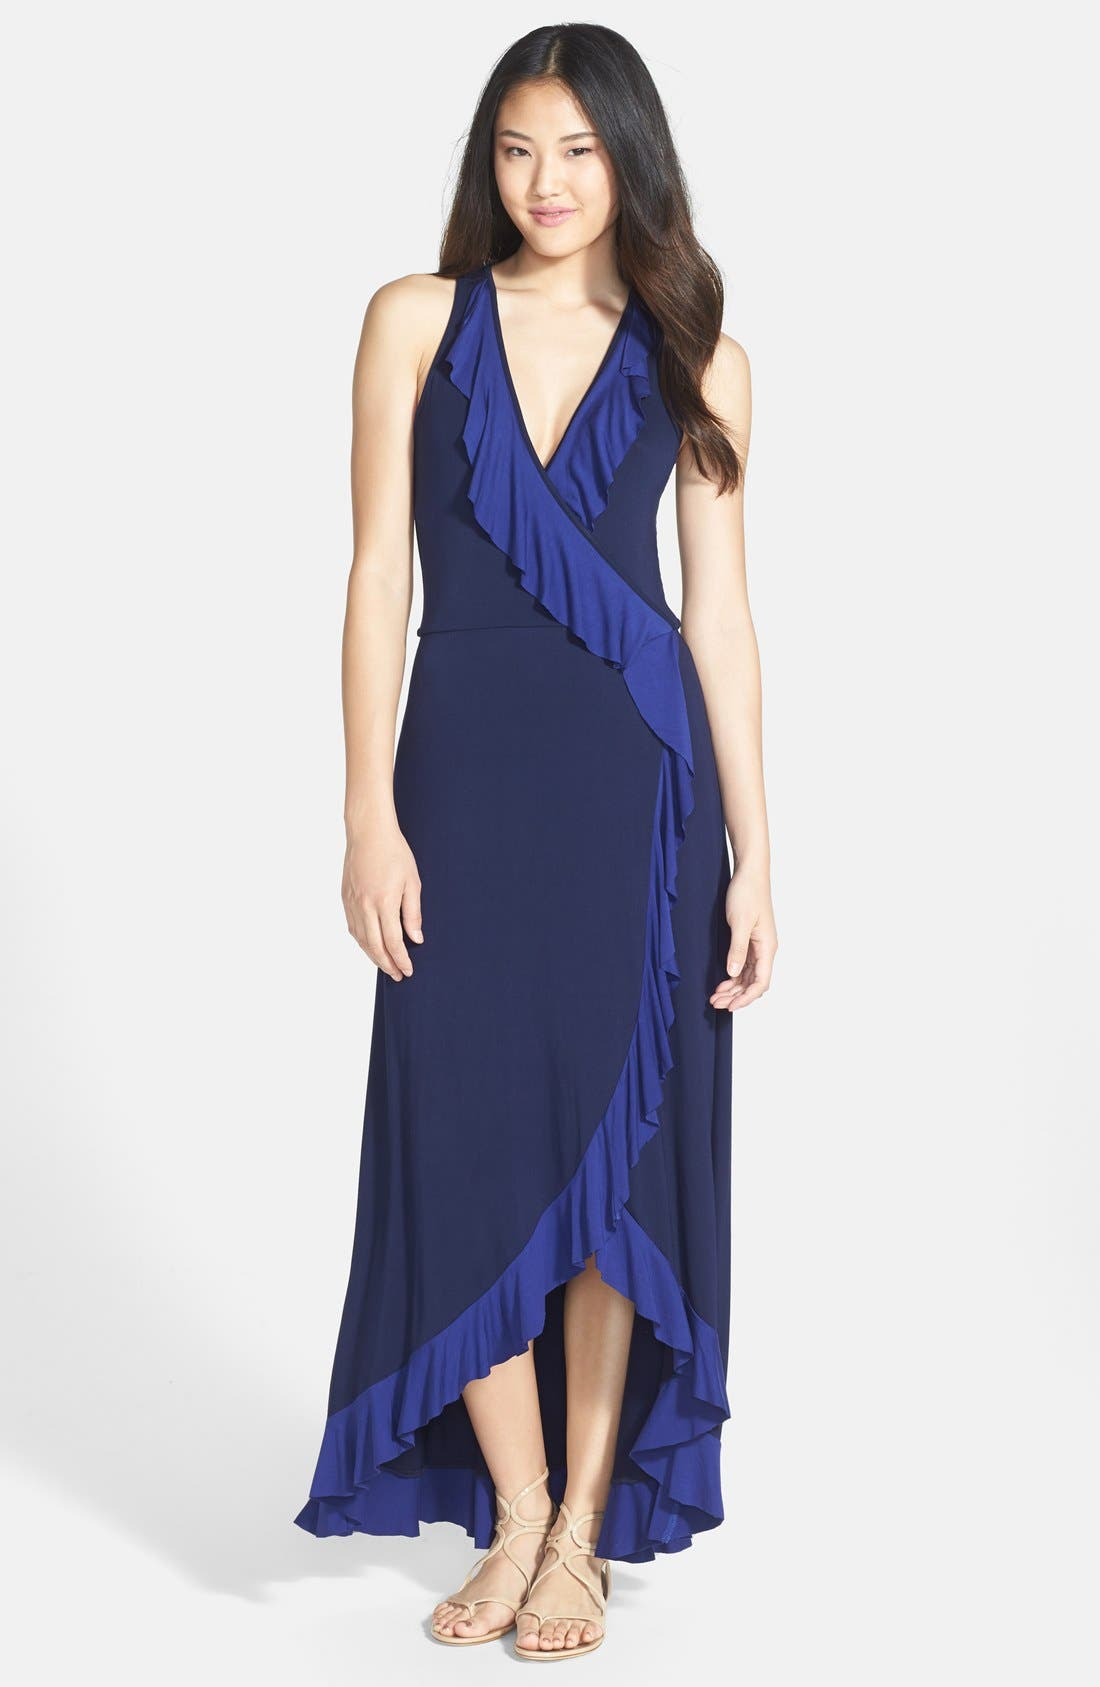 Alternate Image 1 Selected - Felicity & Coco Ruffled Faux Wrap Maxi Dress (Nordstrom Exclusive)